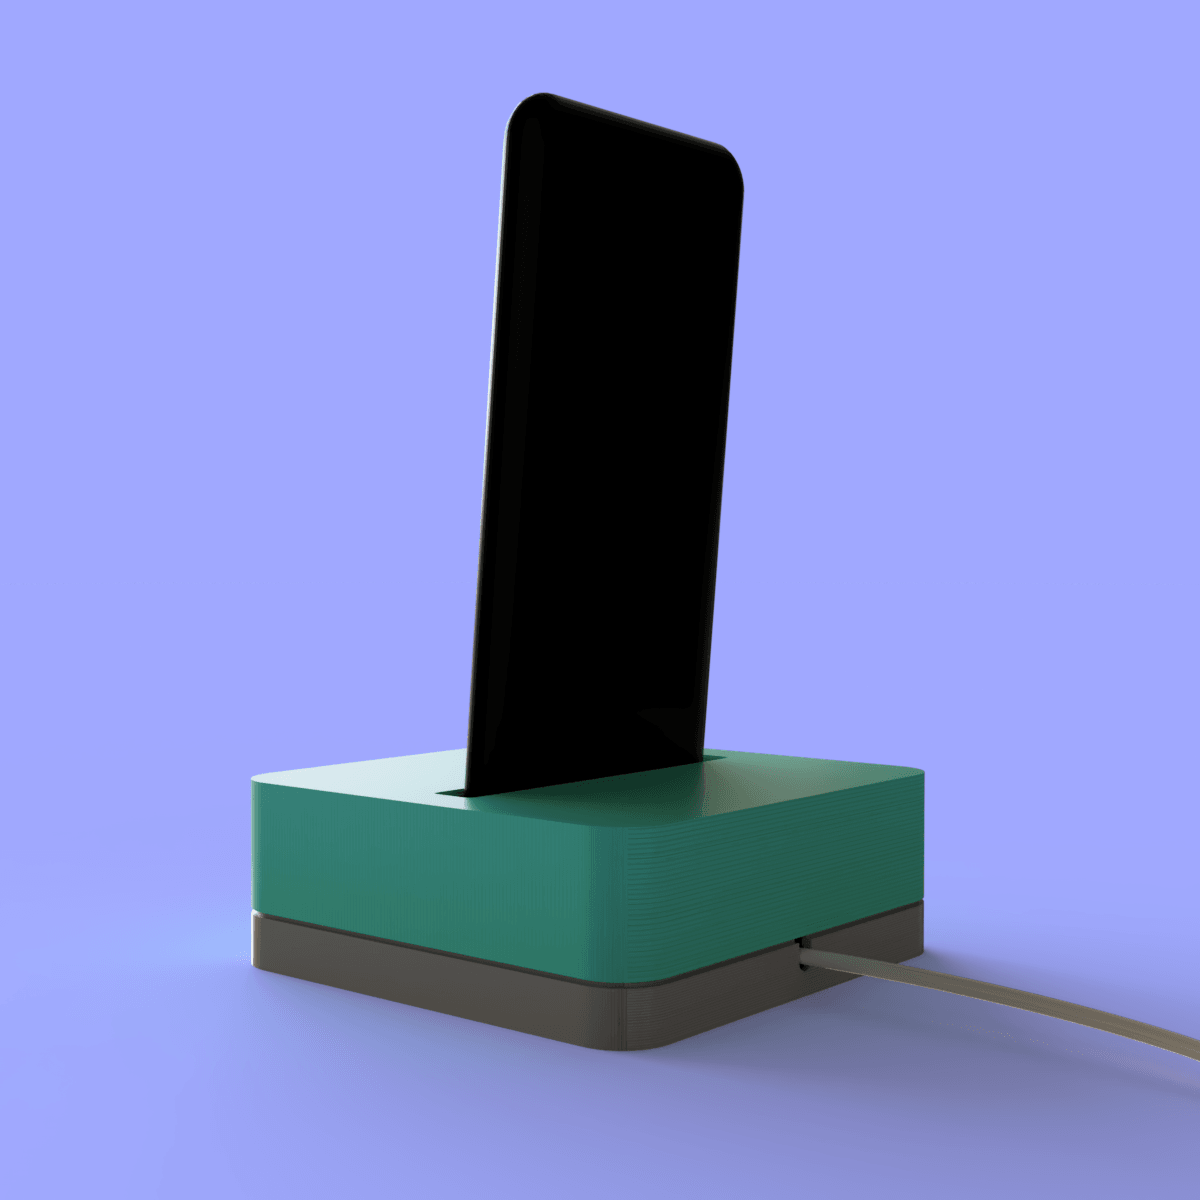 Idock_2019-Jan-14_04-34-04PM-000_CustomizedView6836300580_png.png Download free STL file Dock Iphone X • 3D printable design, Geandro_Valcorte